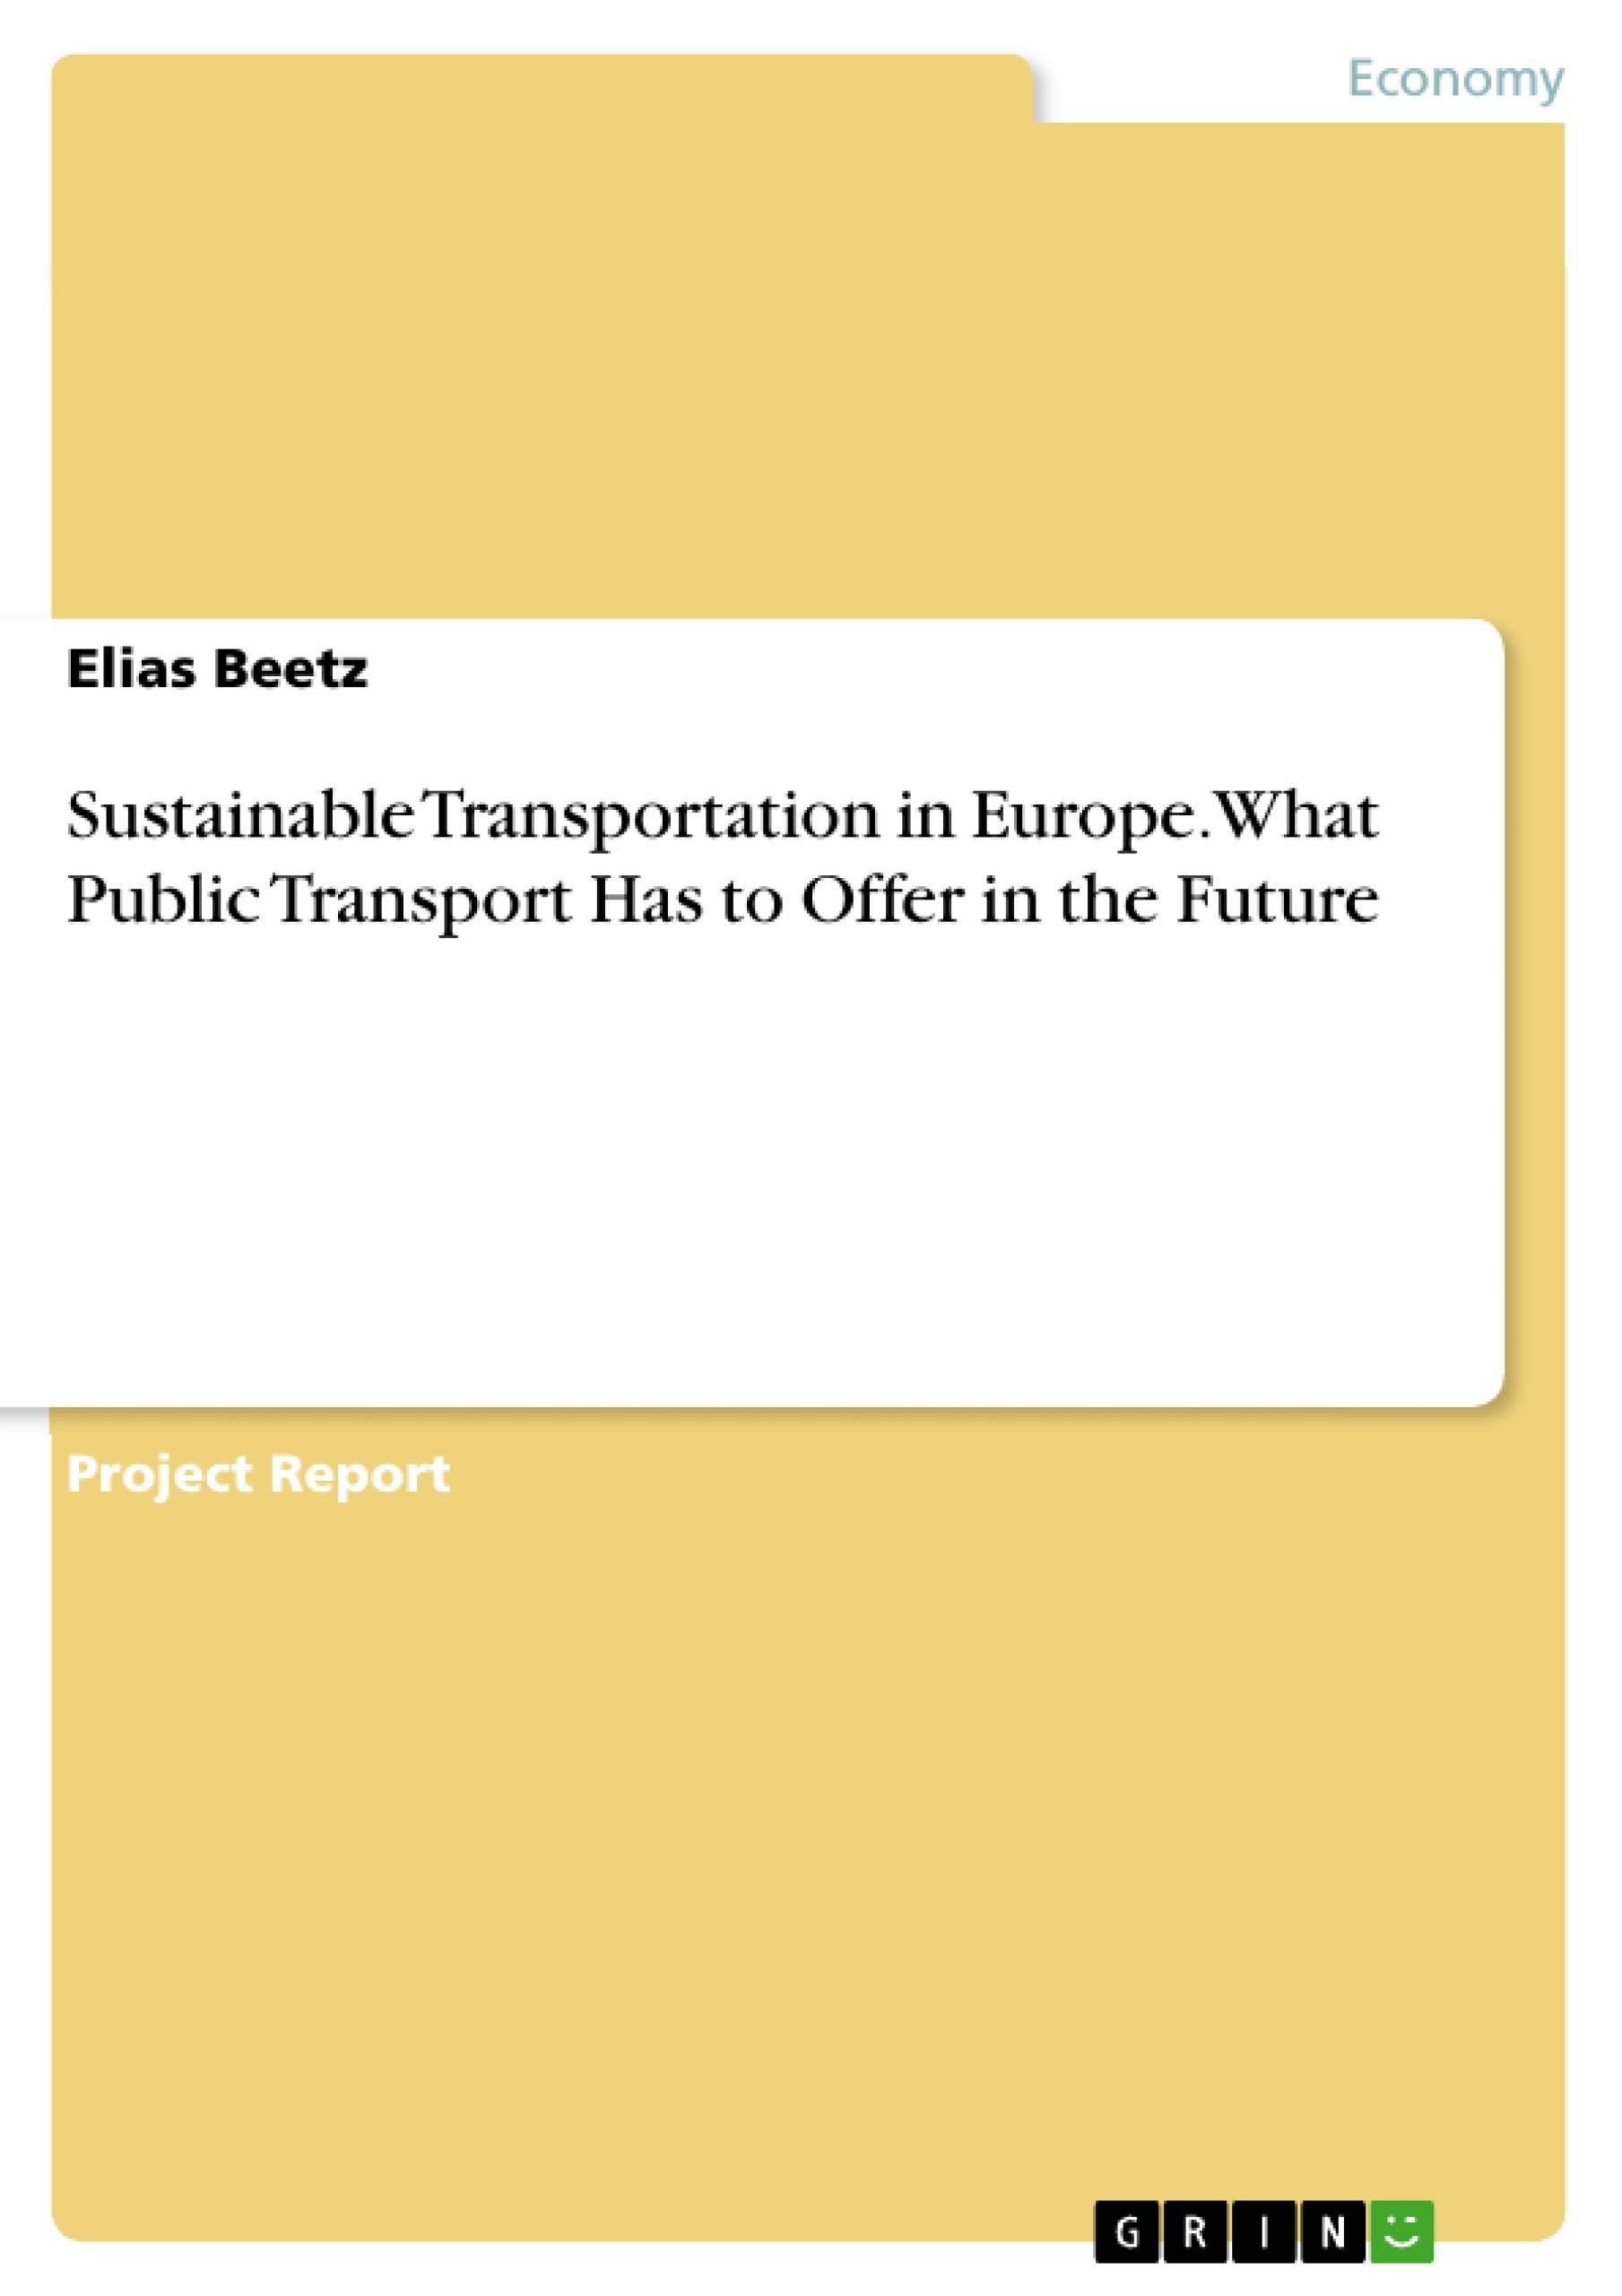 Title: Sustainable Transportation in Europe. What Public Transport Has to Offer in the Future